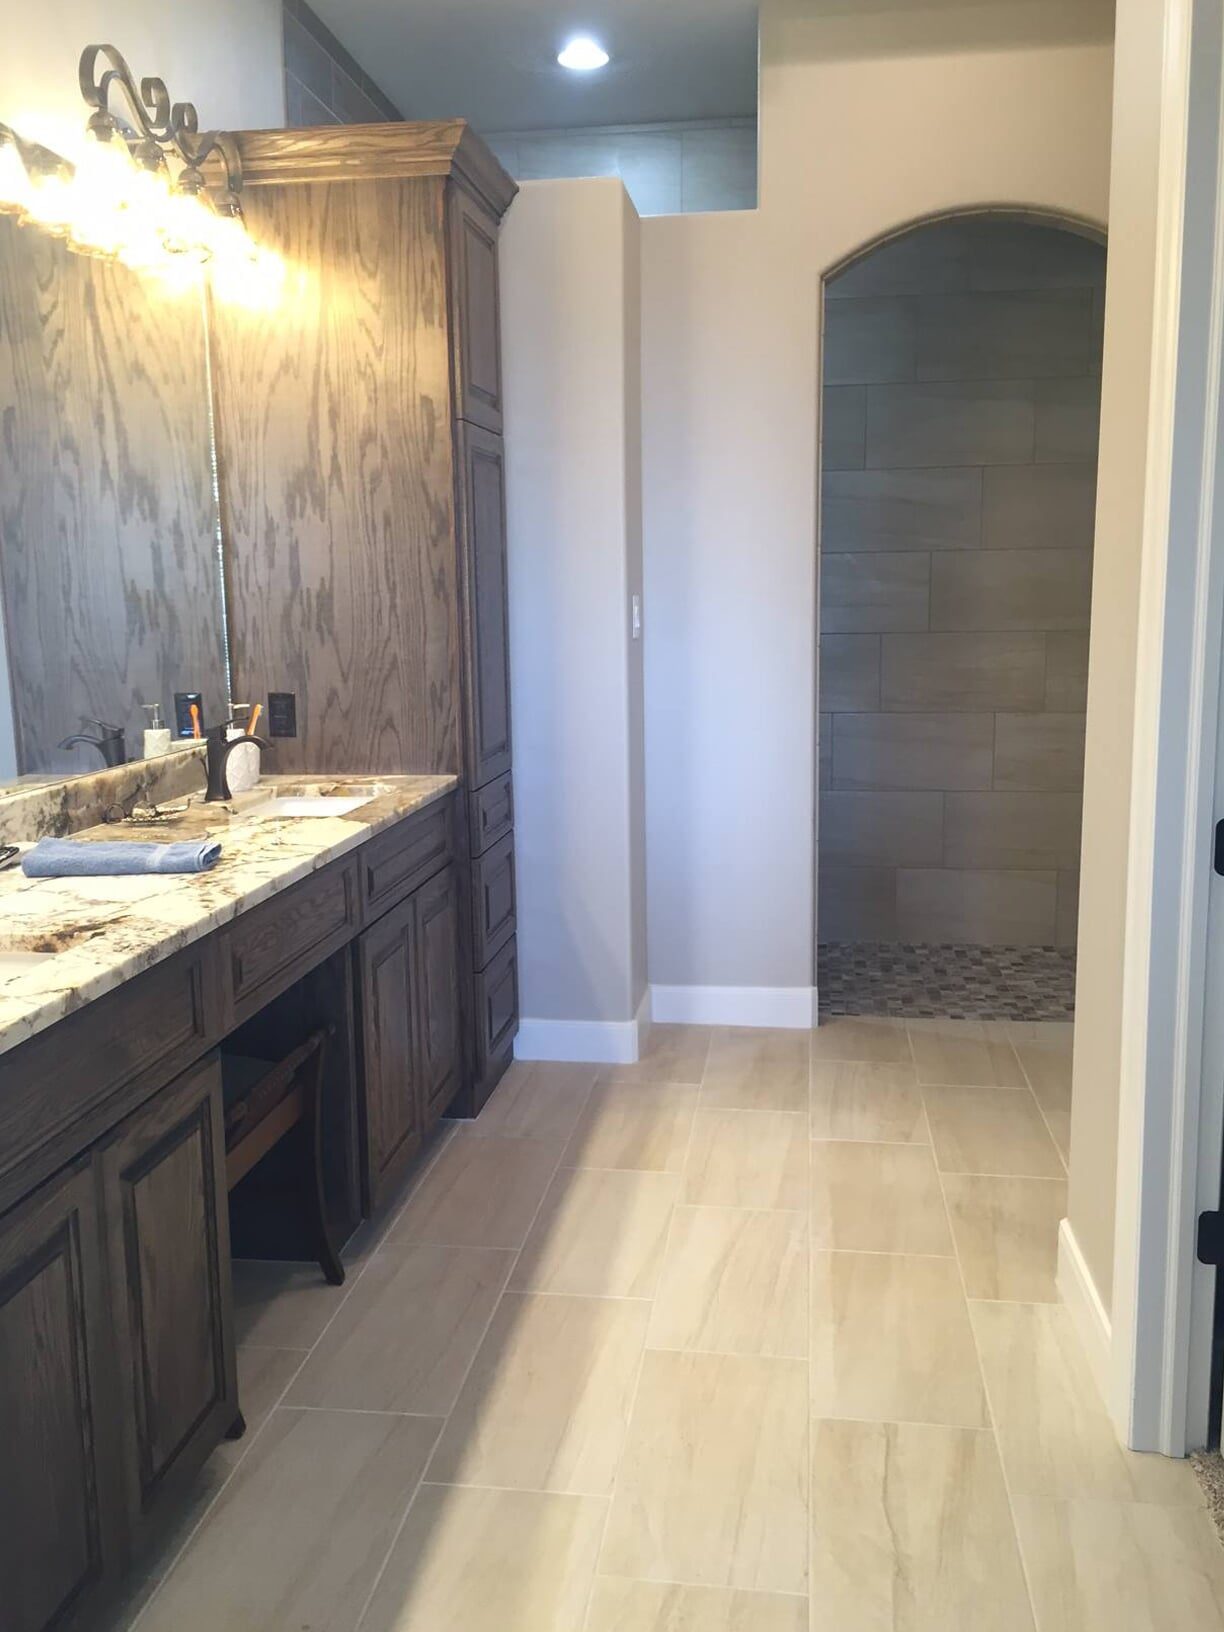 Beautiful bathroom vanity in Galveston, TX from Baytown Floors